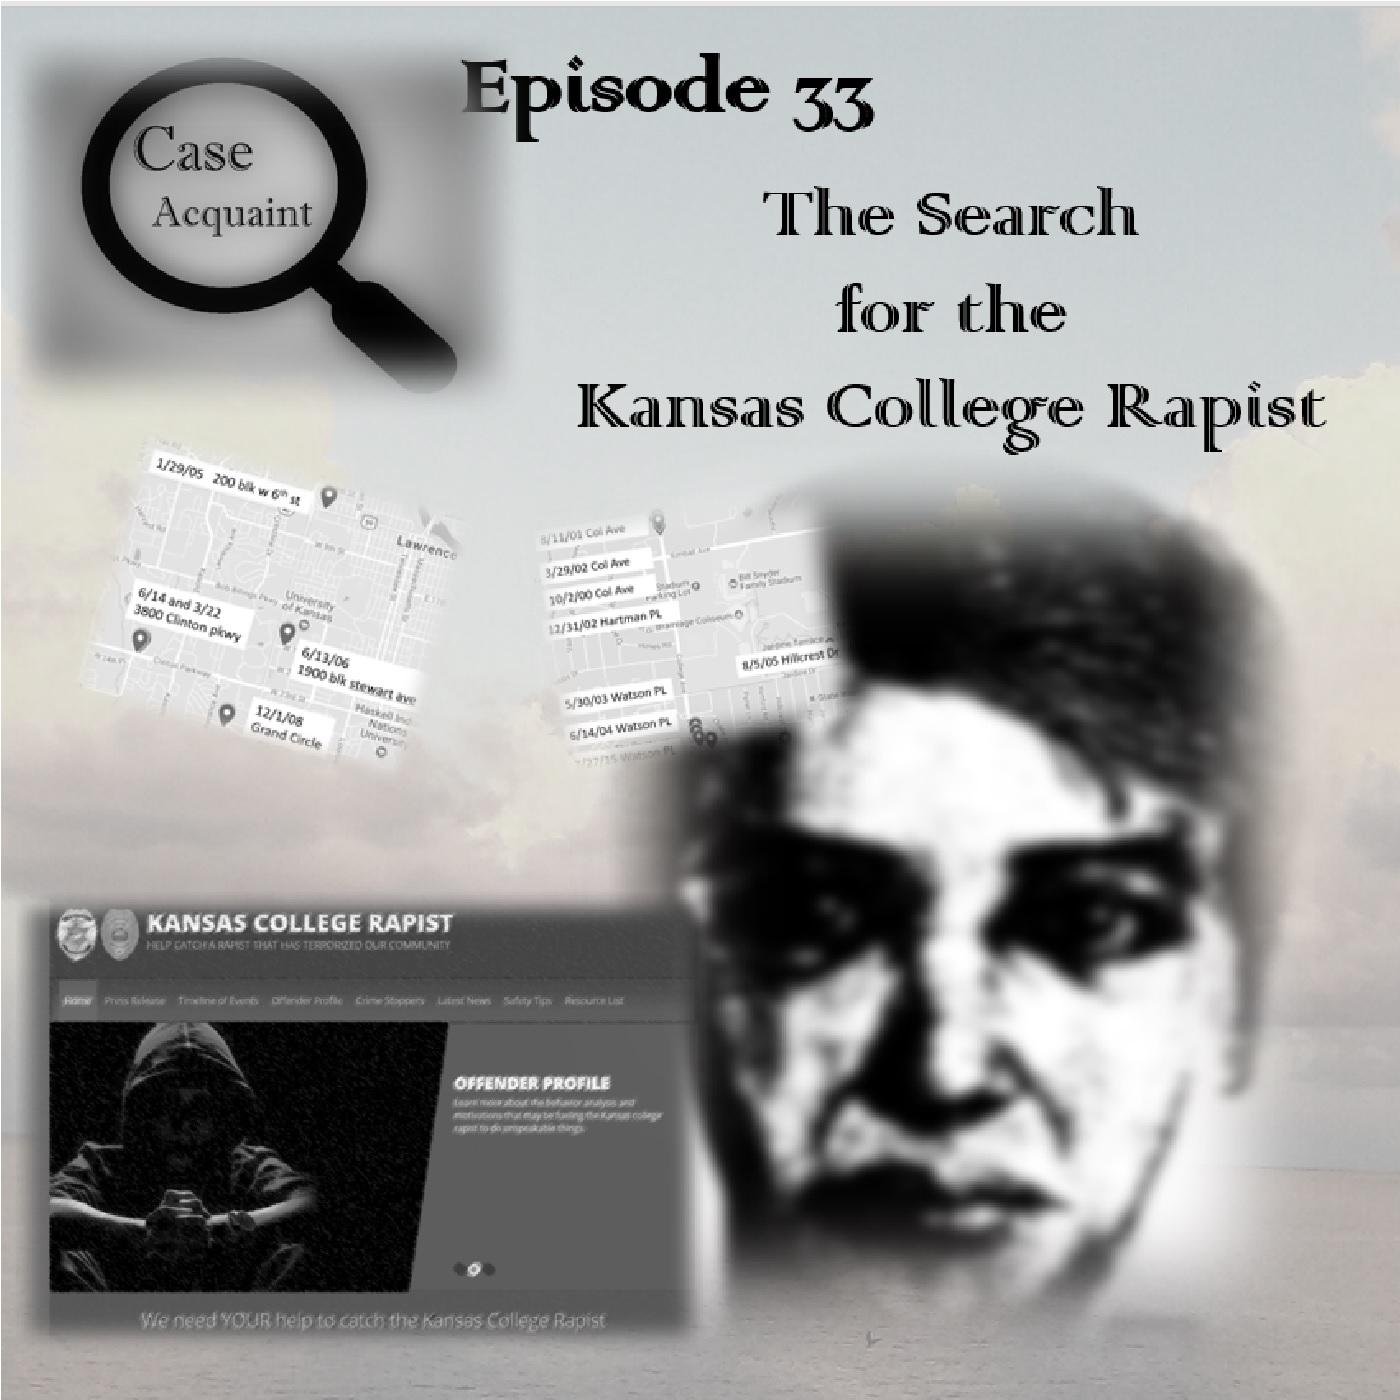 Episode 33 The Search for the Kansas College Rapist